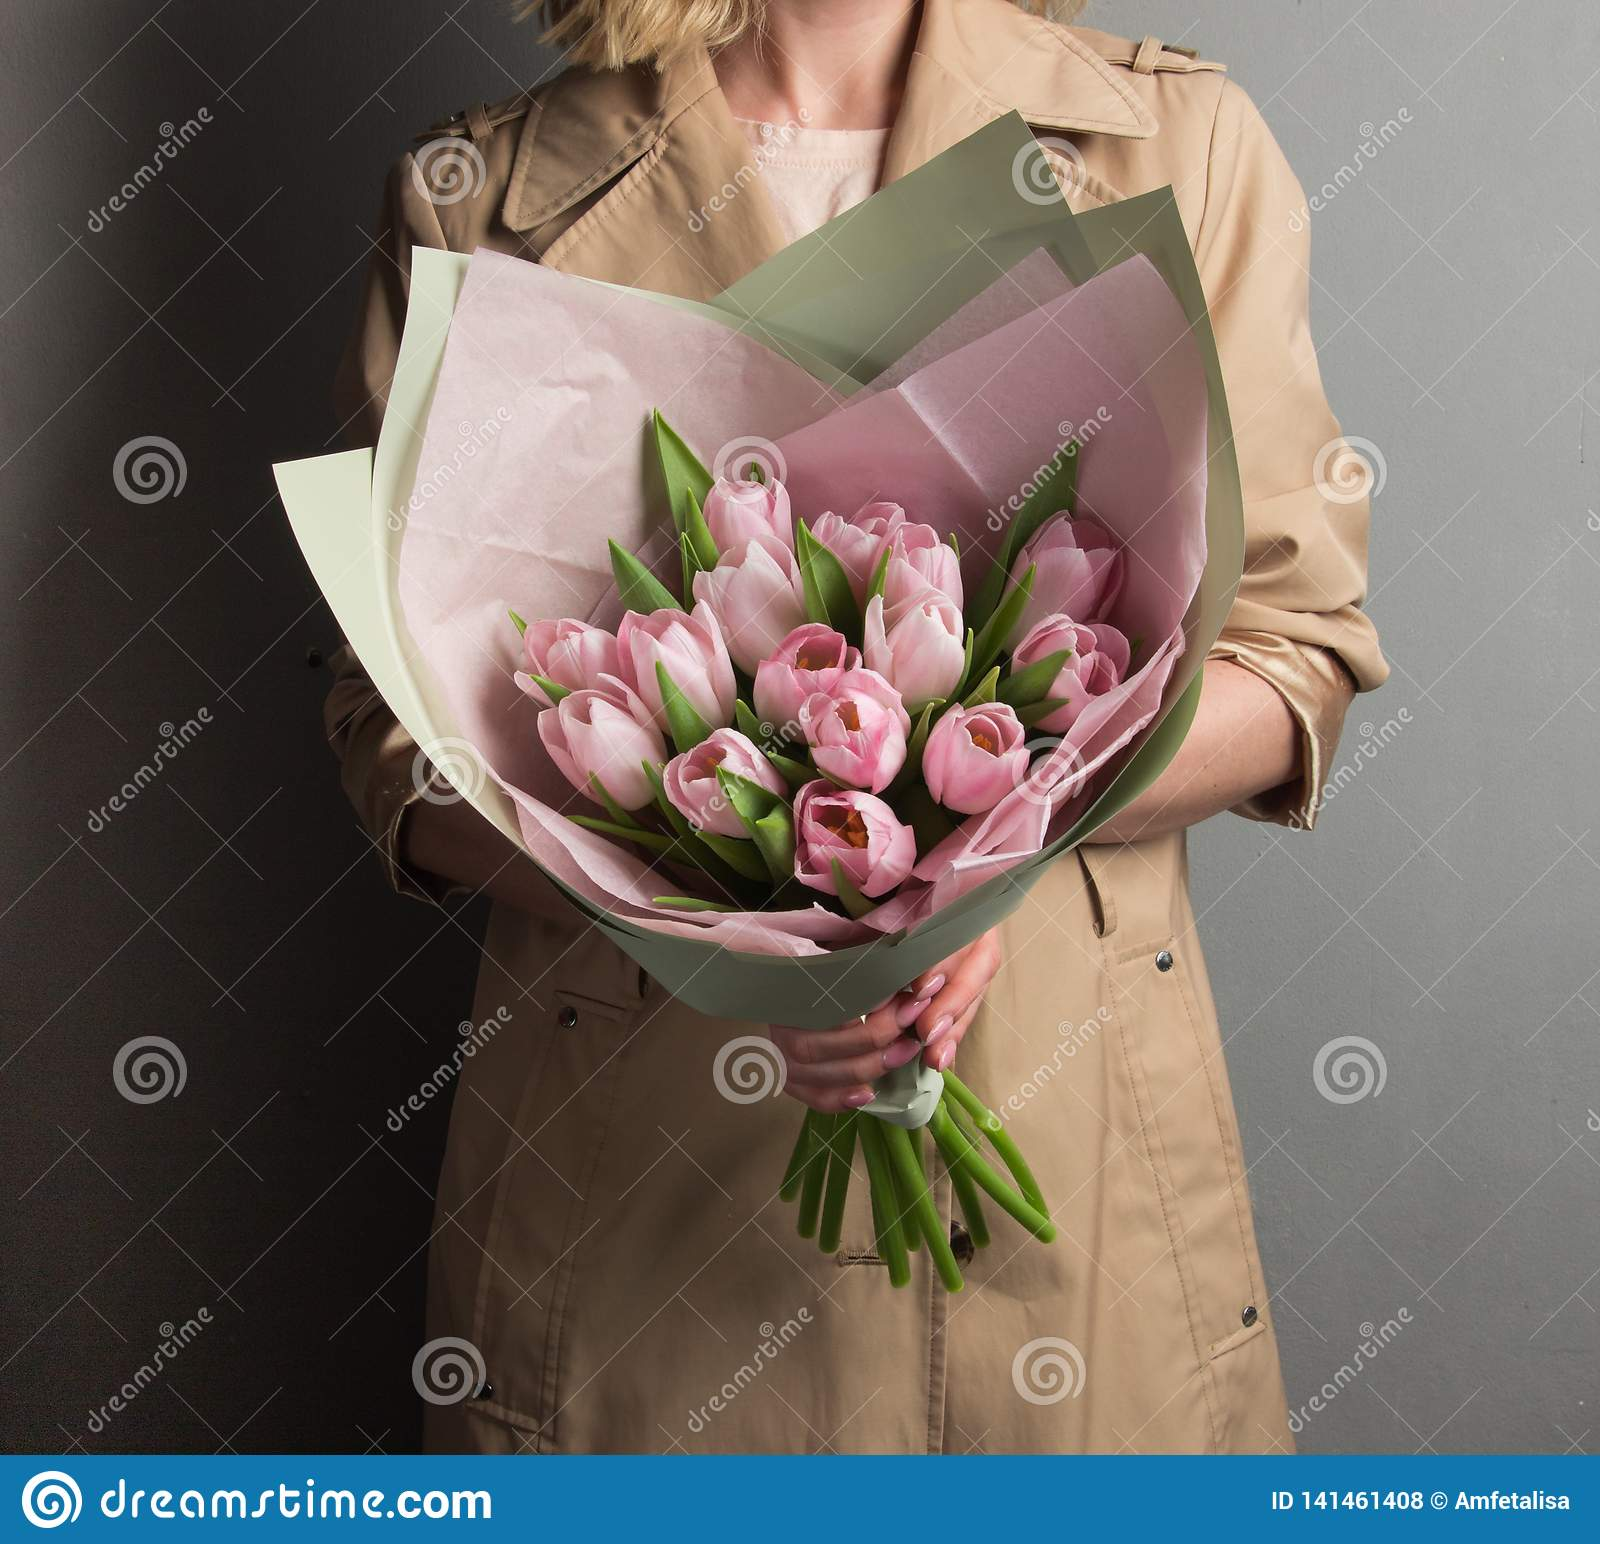 Beautiful blonde girl with curls holding a lush bouquet of flowersbeautiful blonde girl holding a lush bouquet